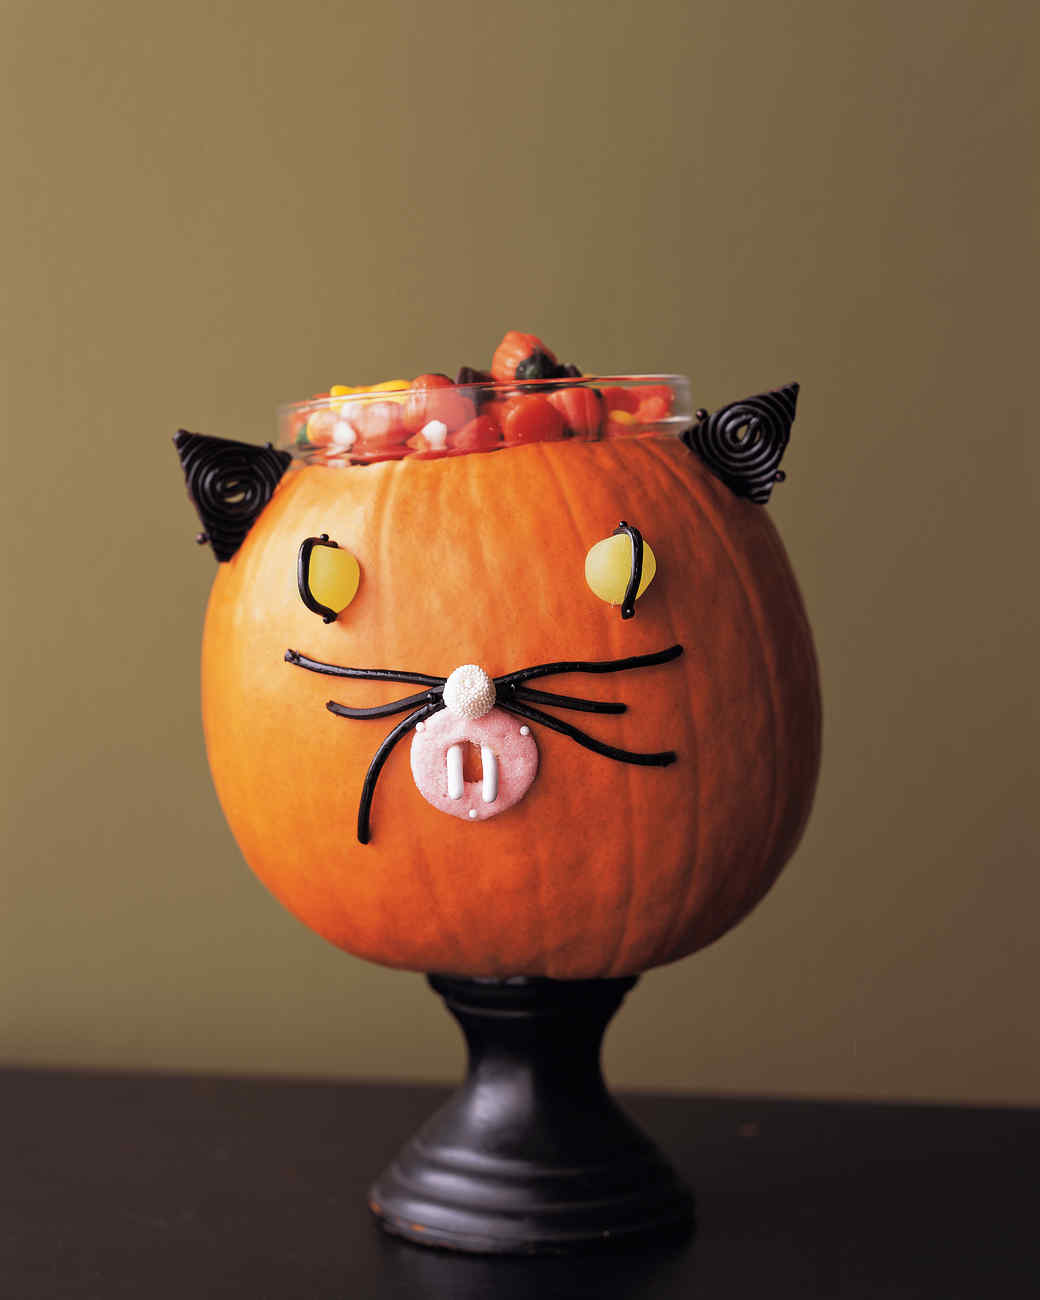 pumpkin projects for kids martha stewart - Pumpkins Decorations